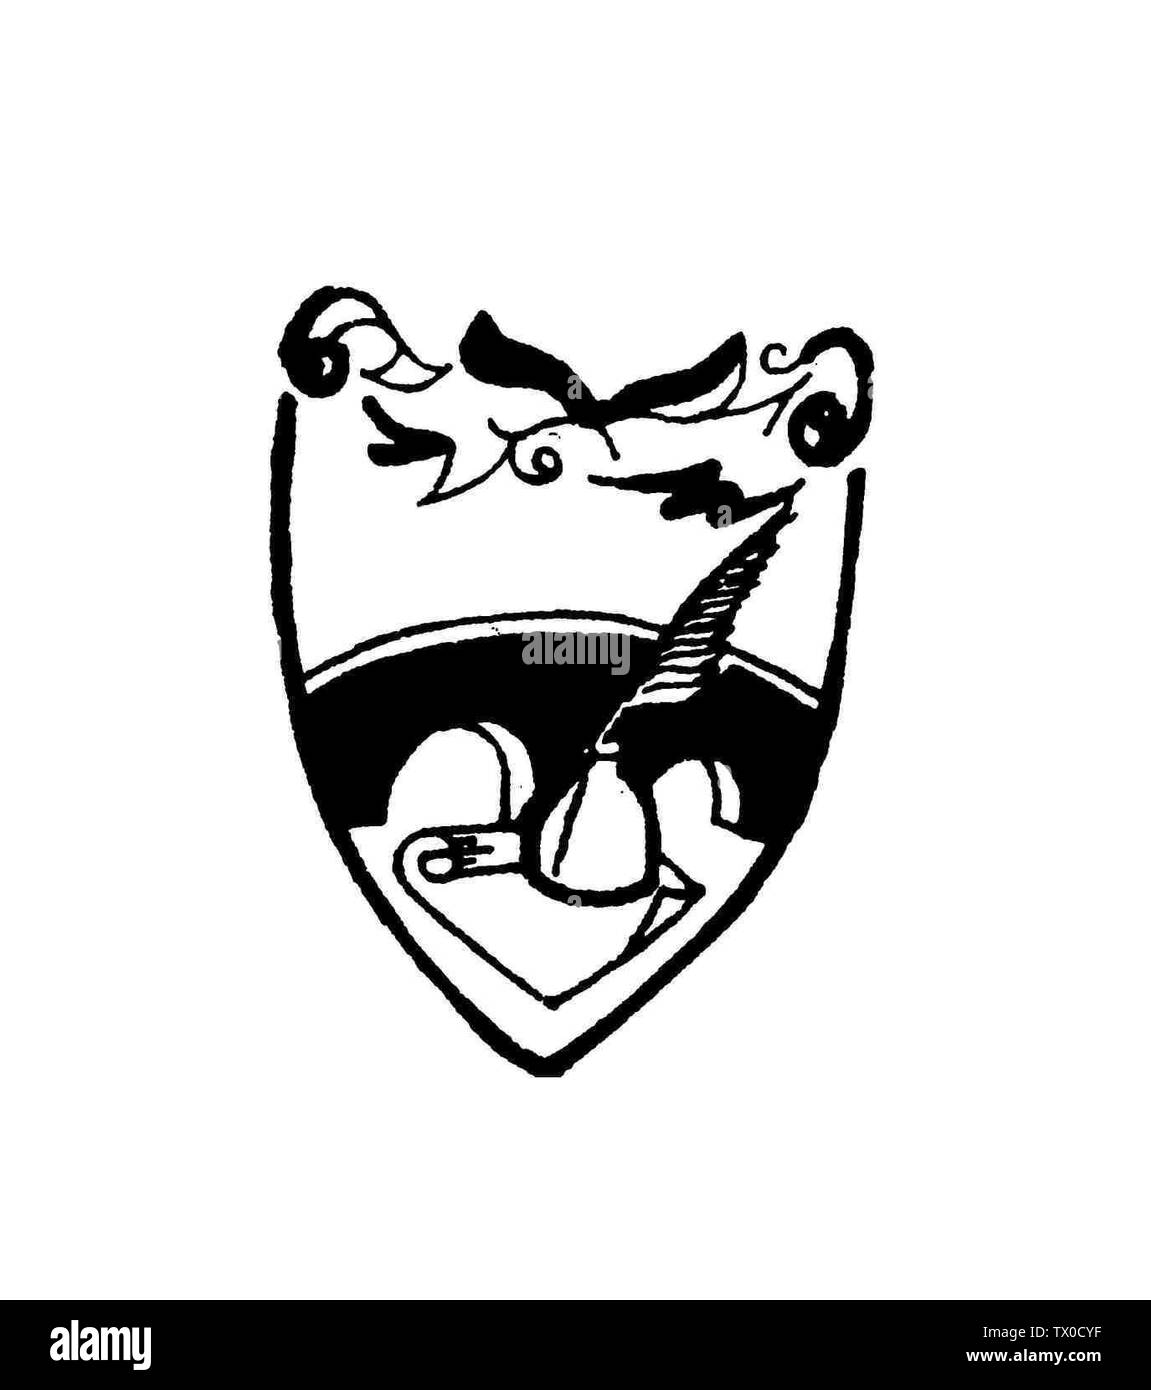 'English: The Bridgetown Vocational College crest that appears on the school uniform and school diaries; 15 April 2007; Own work; Tad1989 (talk) (Uploads); ' - Stock Image